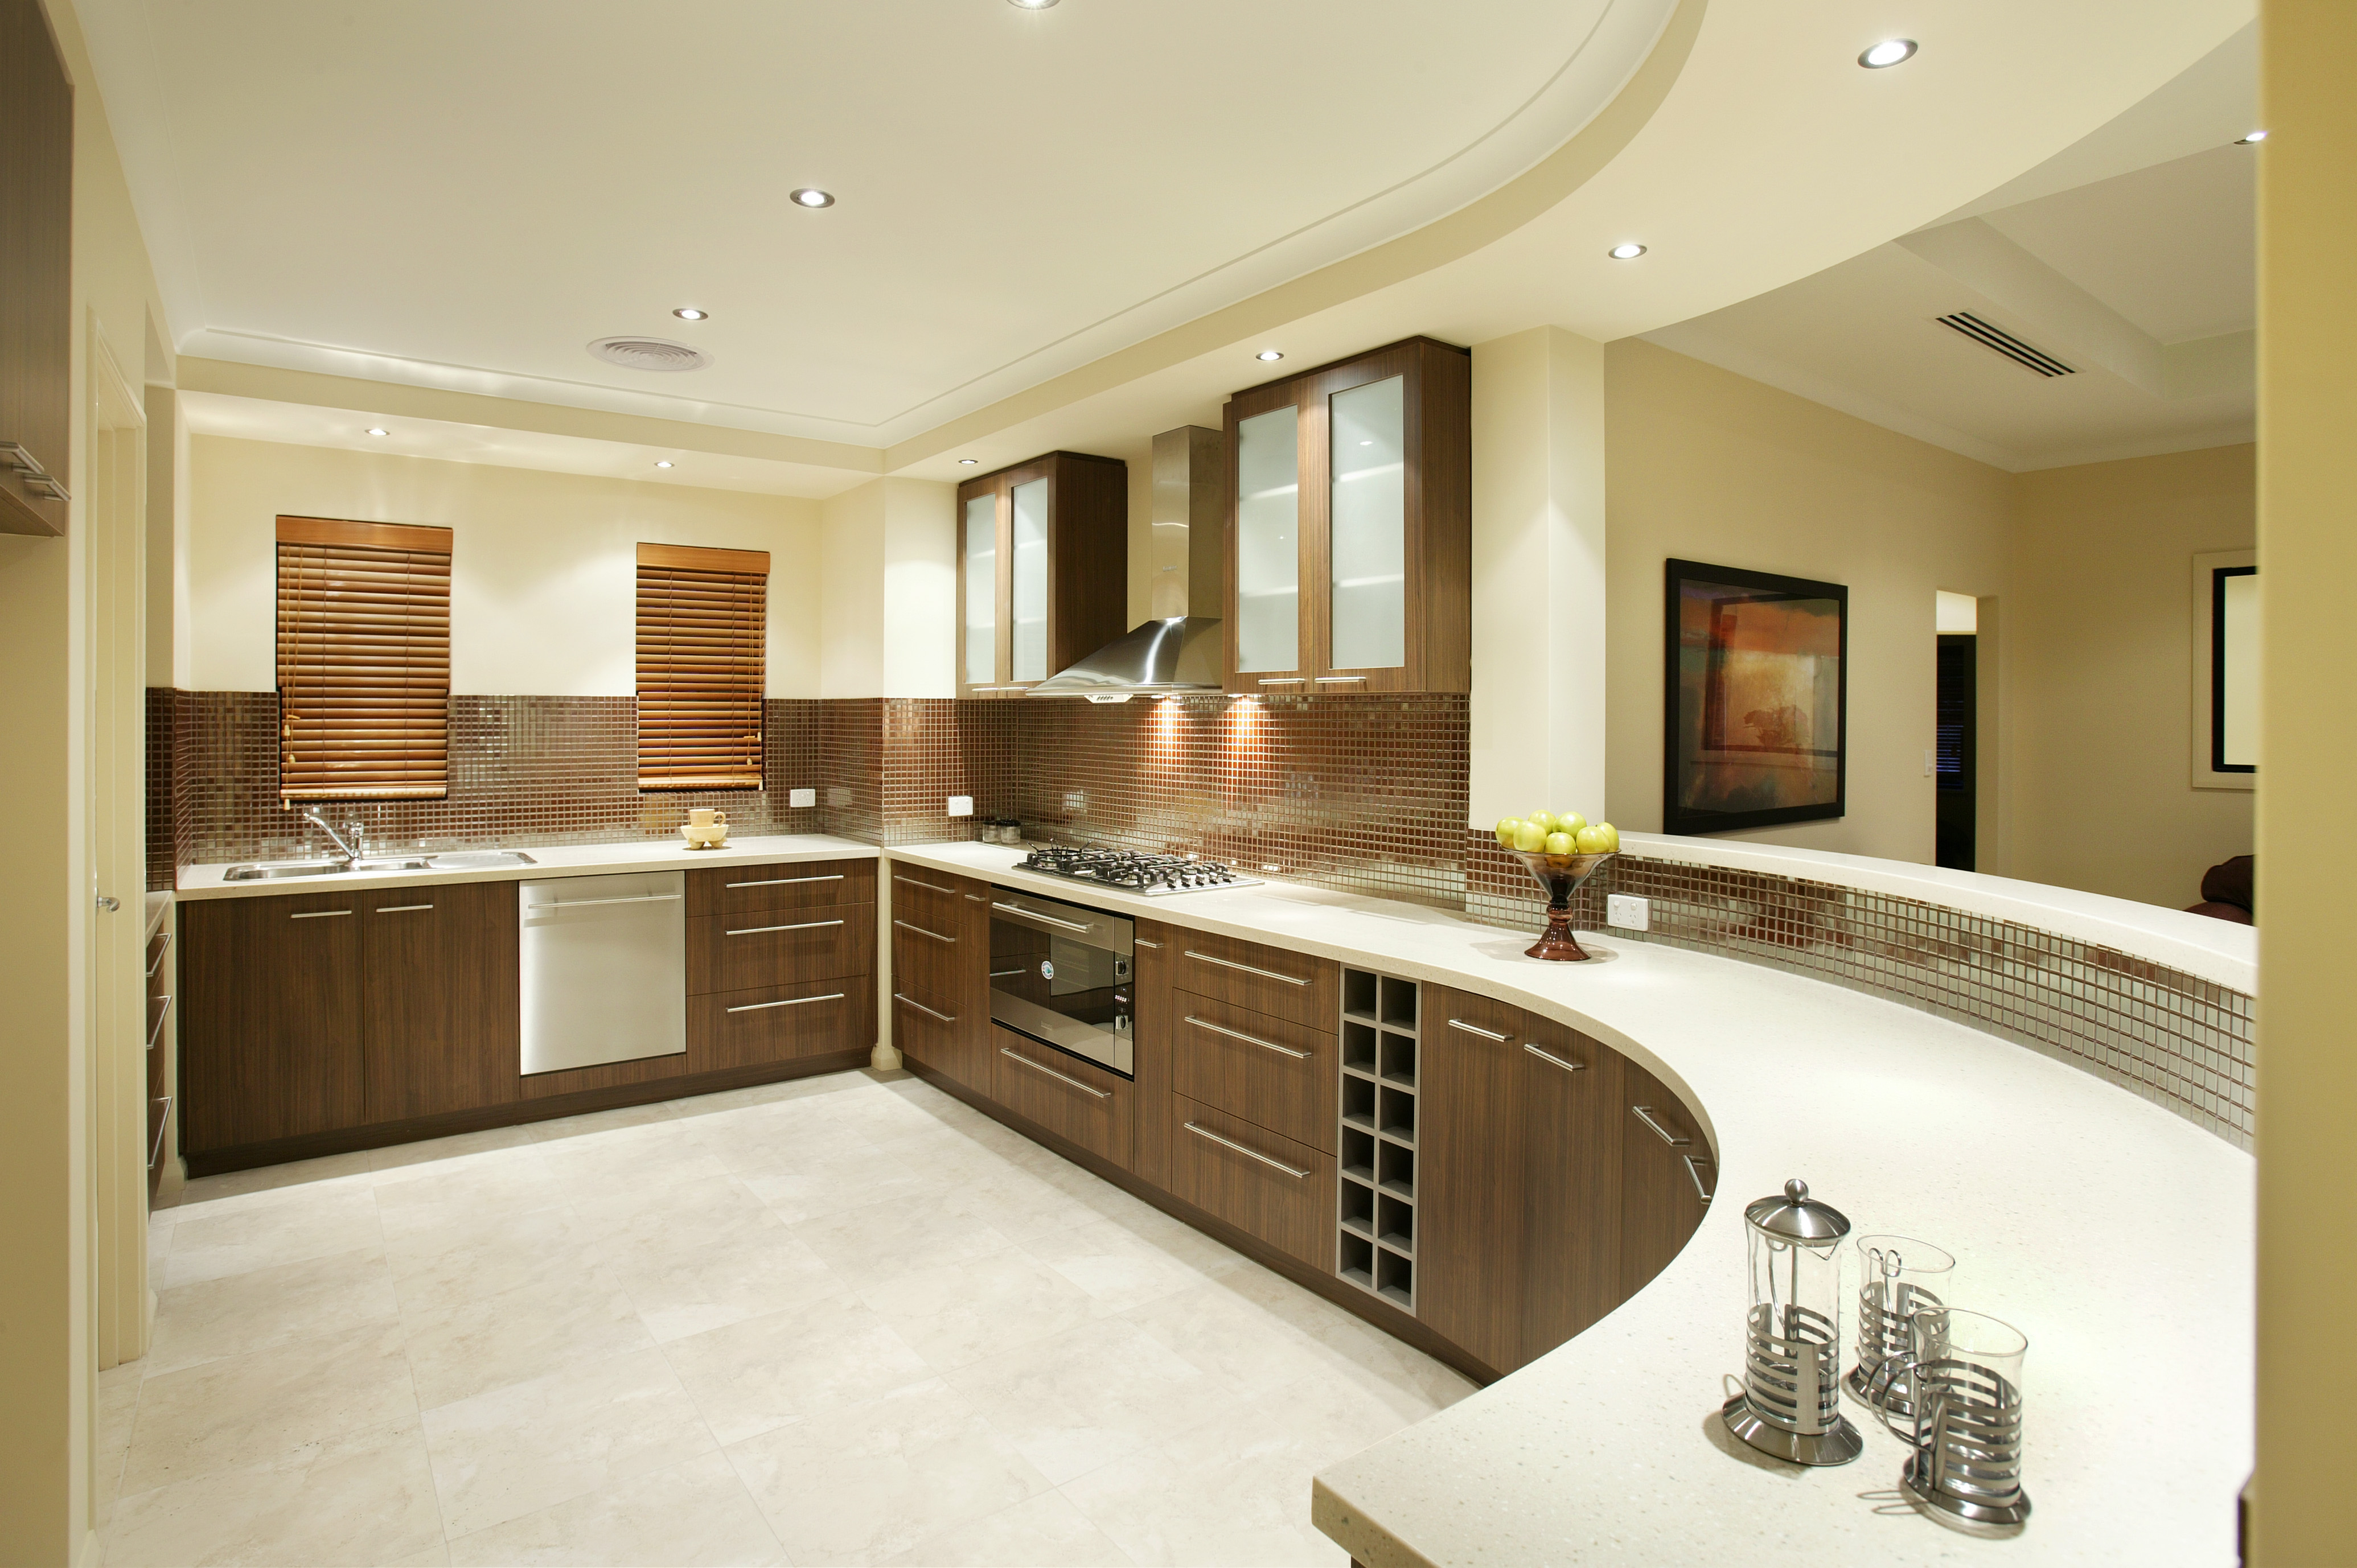 1503 Views No Comments On Home Kitchen Design Display